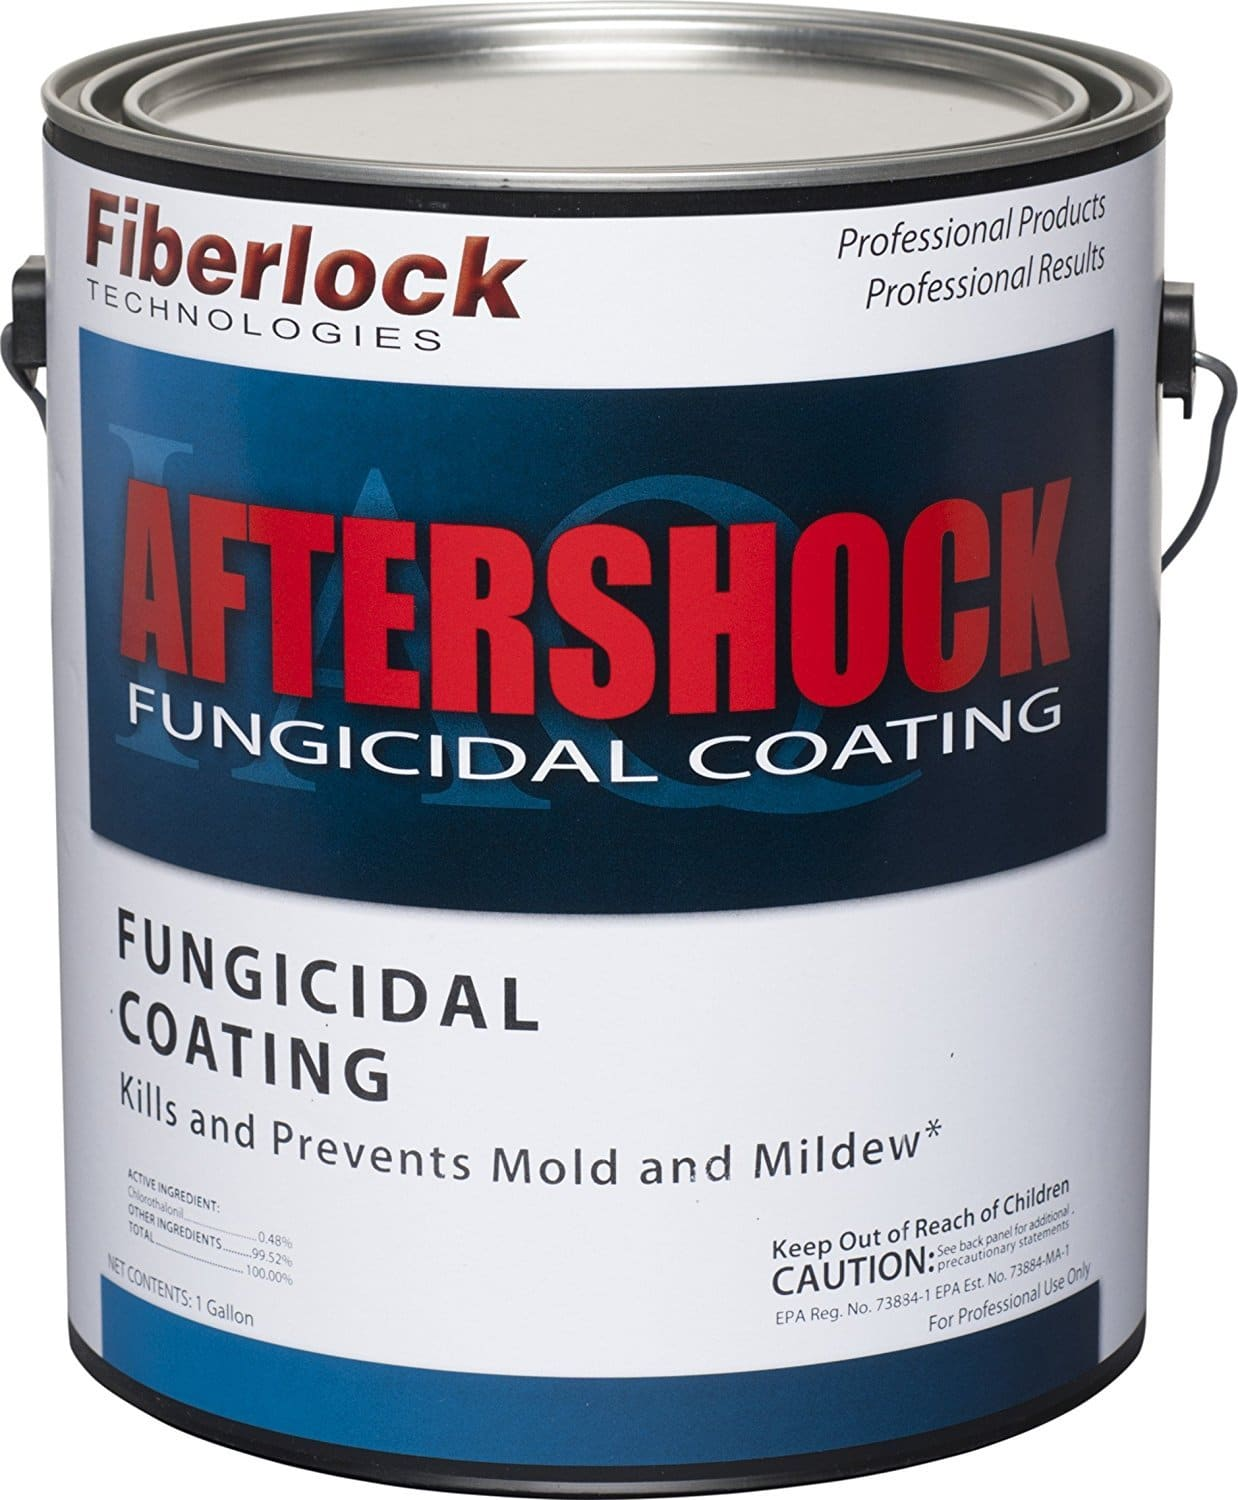 Fiberlock Aftershock review